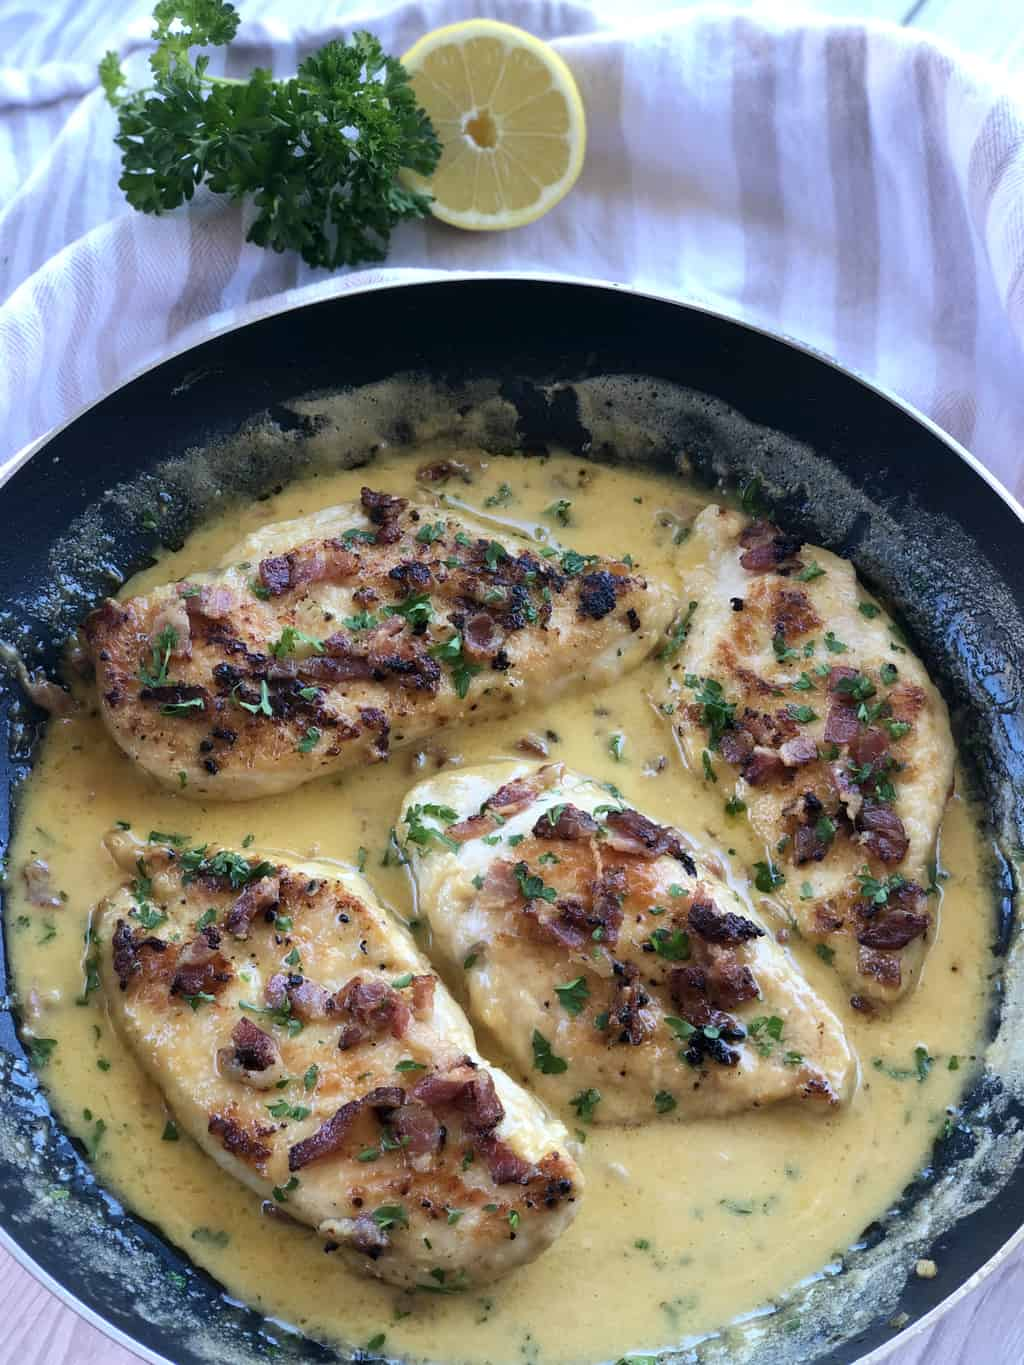 Creamy Chicken dish in a frying pan showing lemon and parsley as garnish